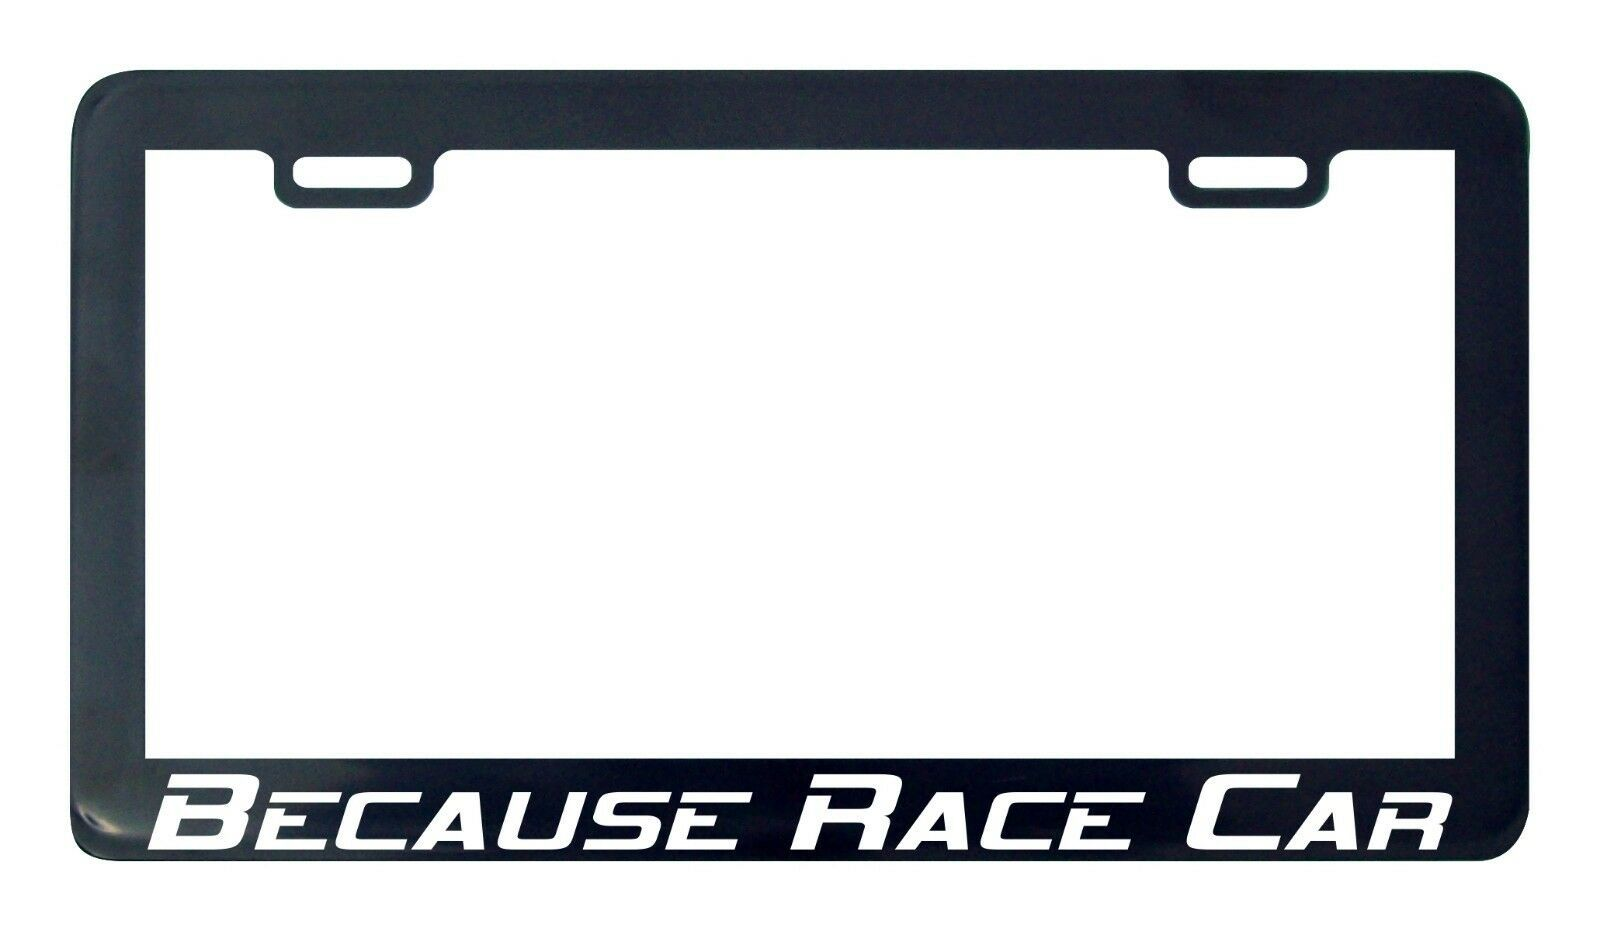 Primary image for Because Race Car  license plate frame holder